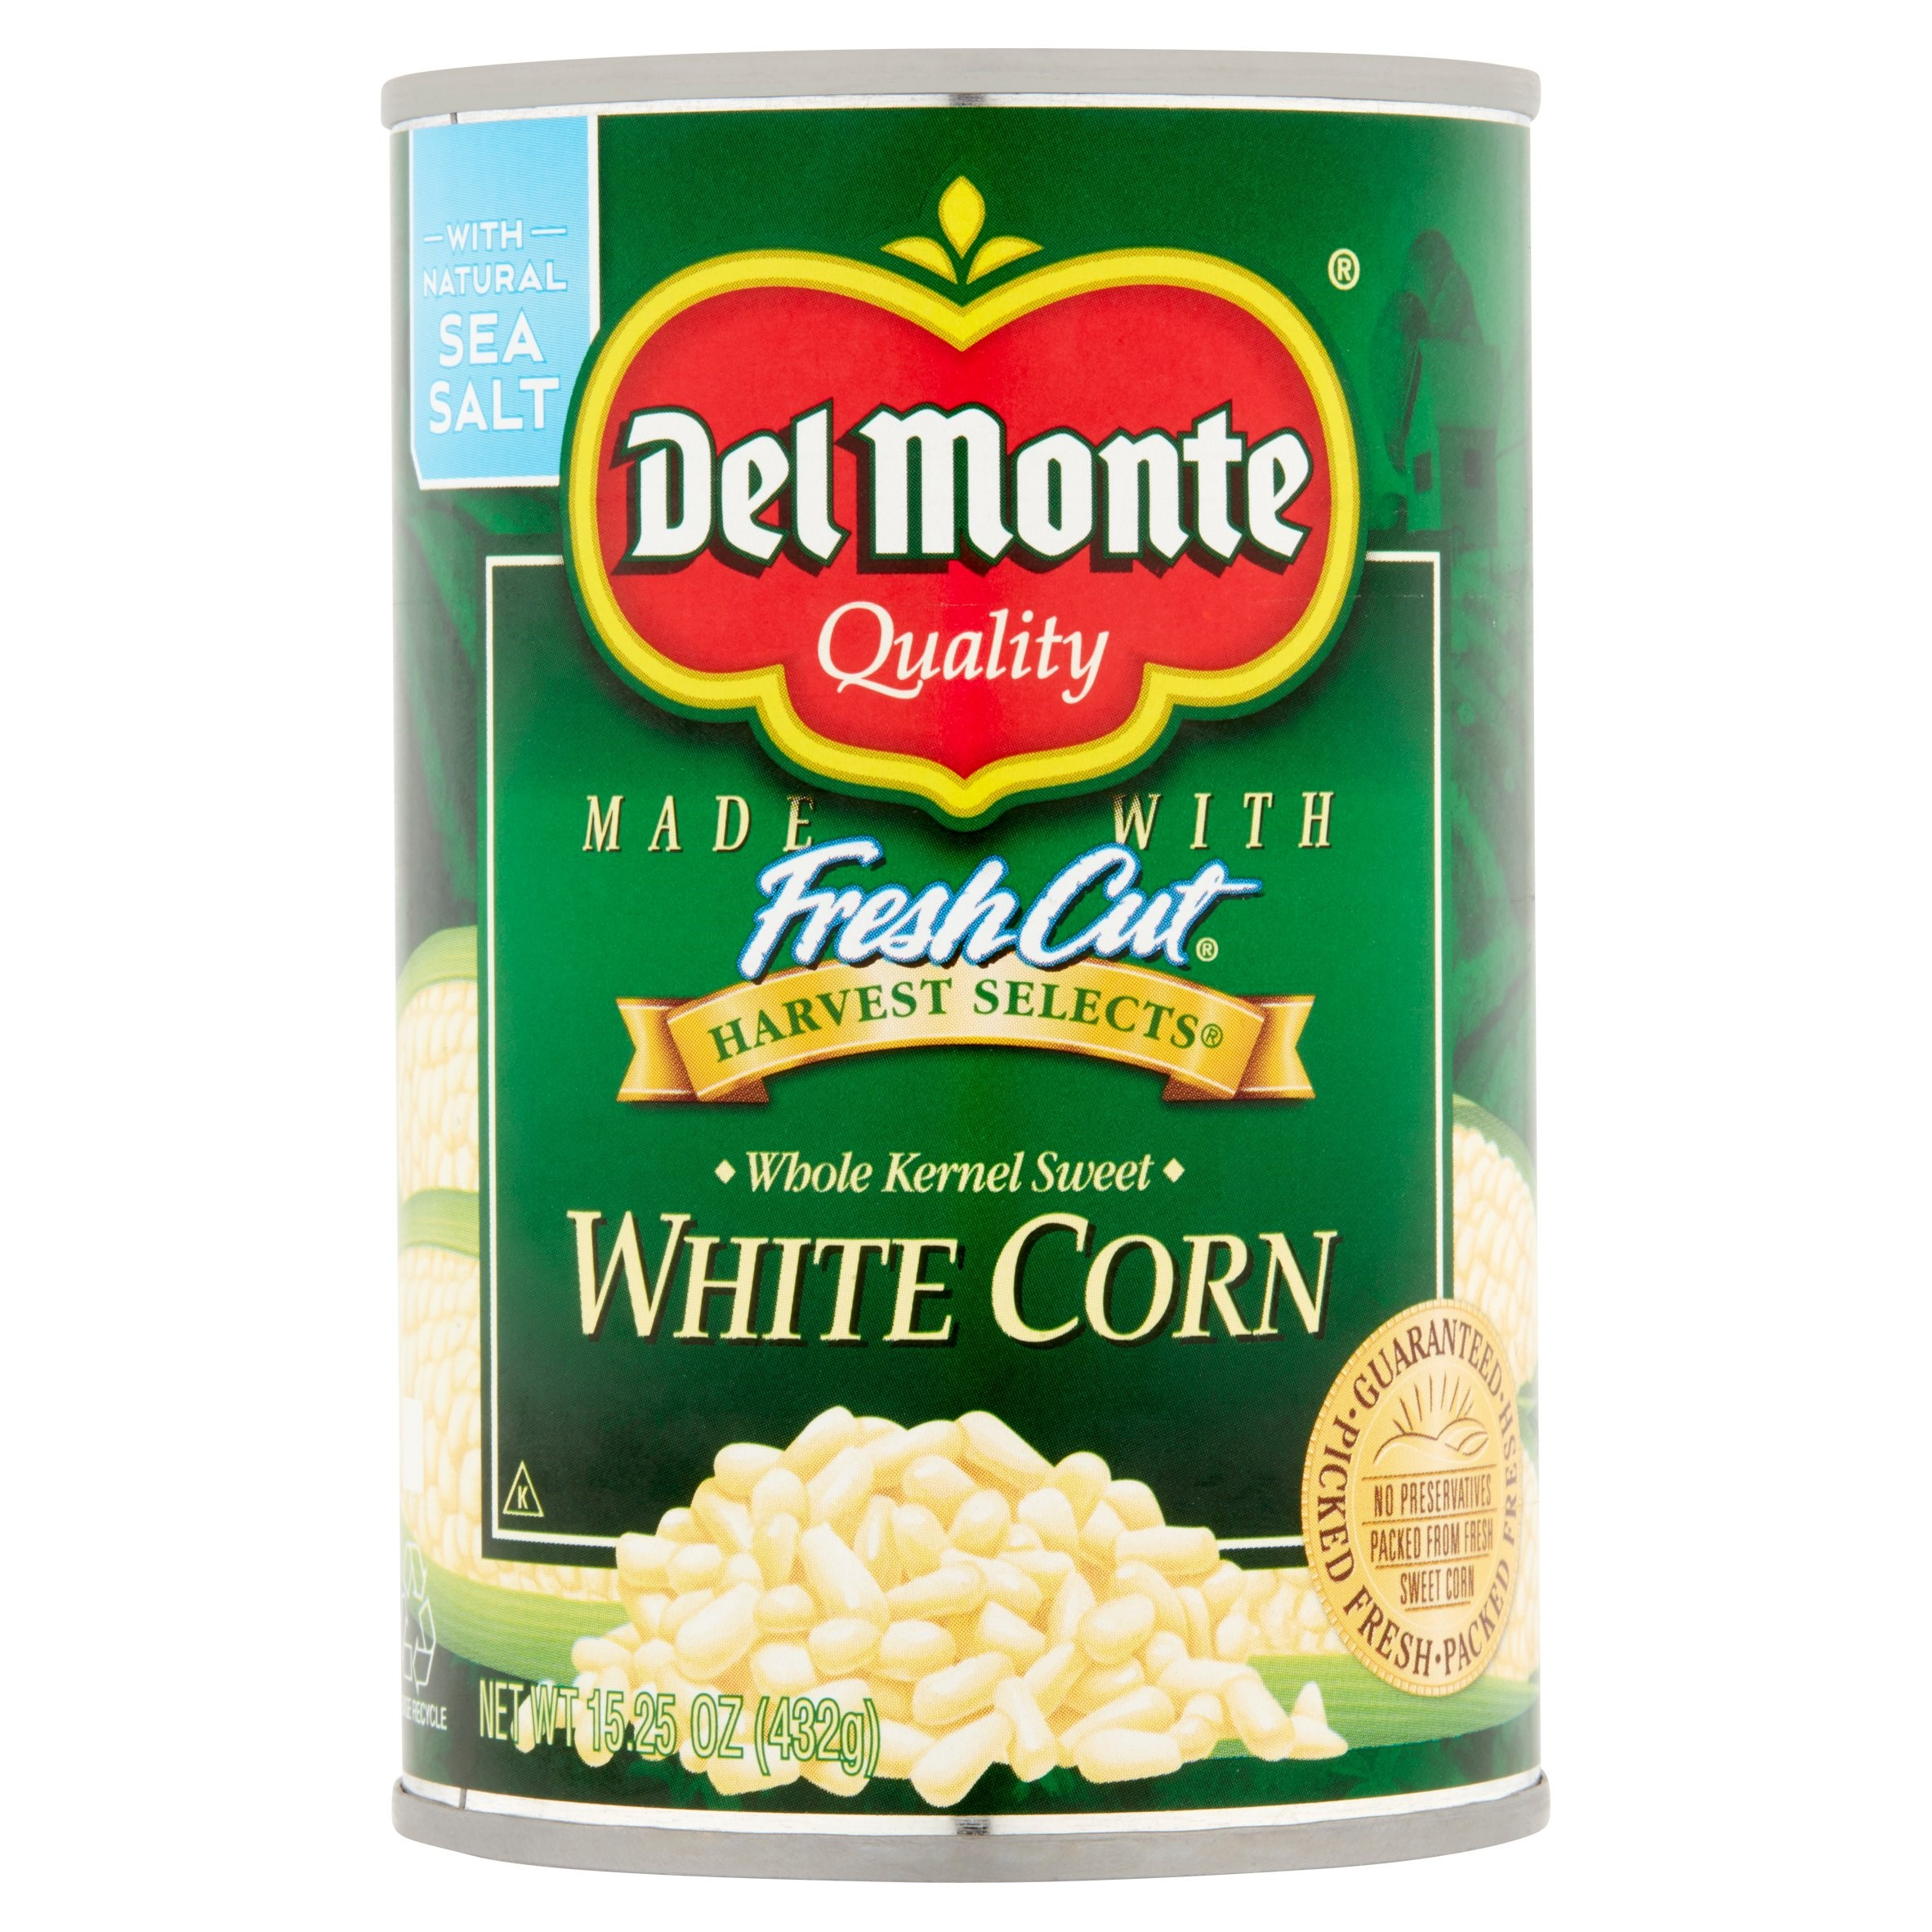 Del Monte Sweet White Corn, Whole Kernel, 15.25 Oz